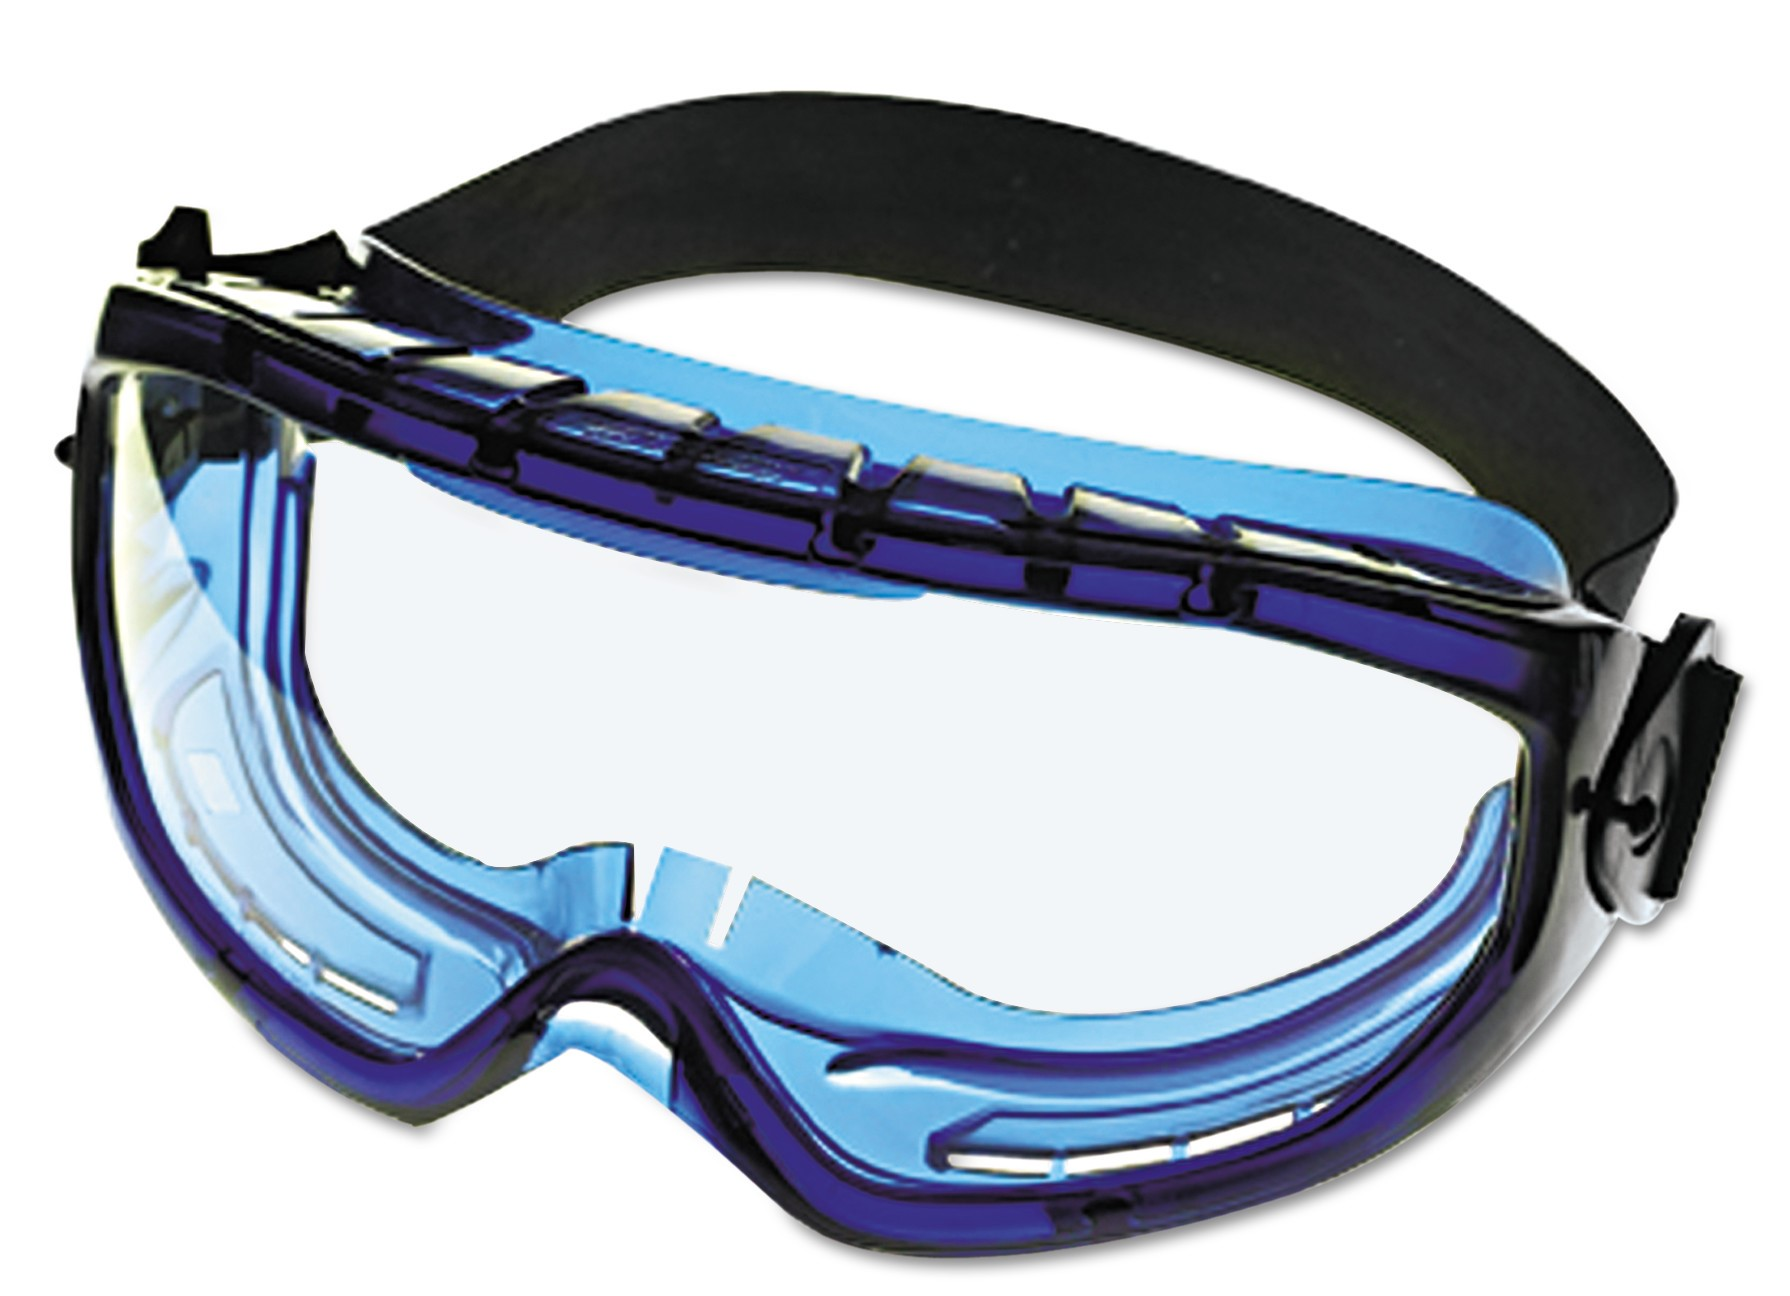 Blue frame safety goggles with clear lenses